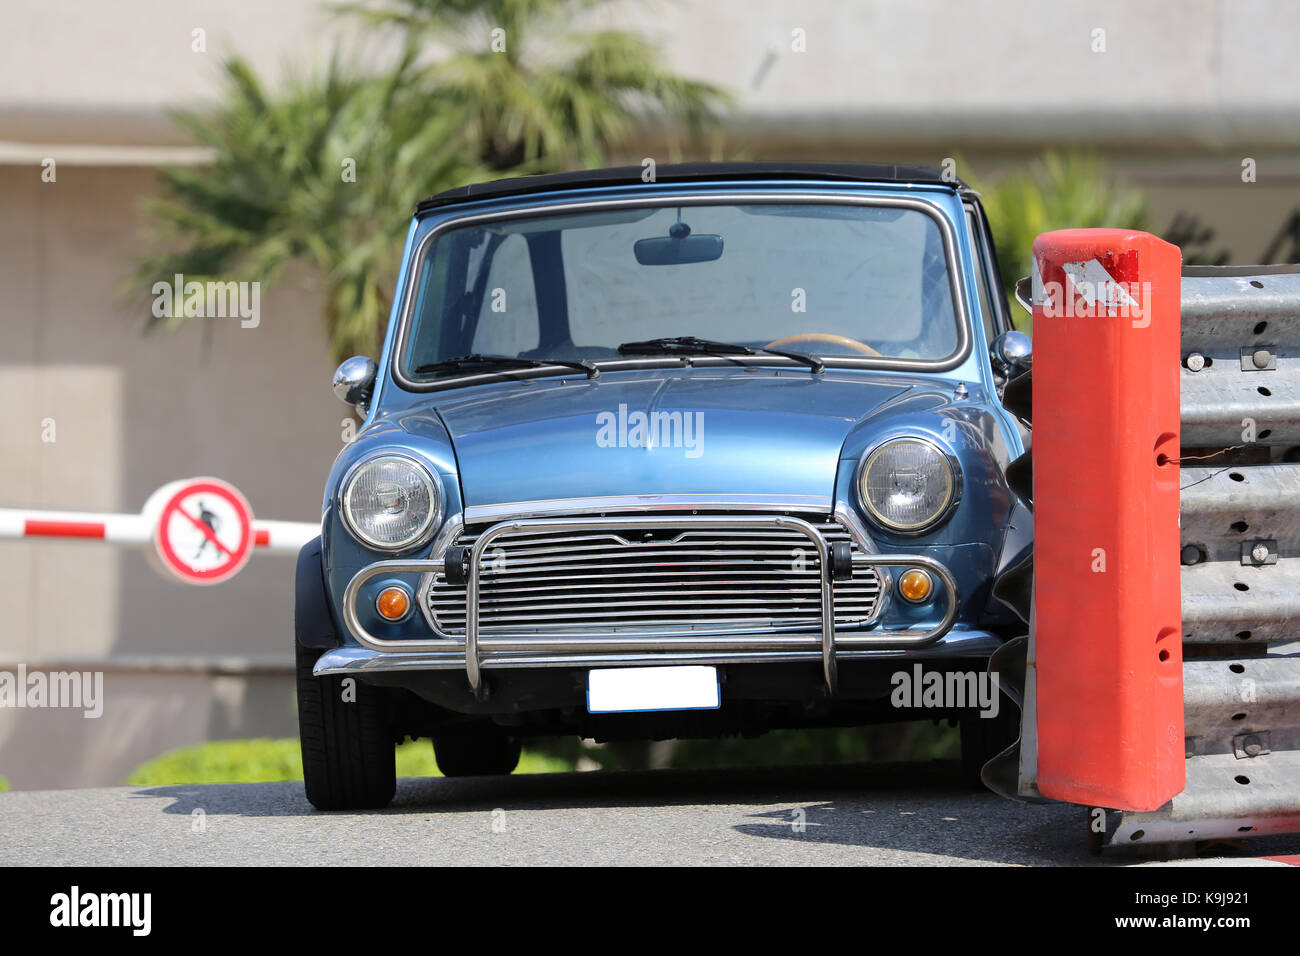 Blue Retro Car Parked on the Street - Stock Image